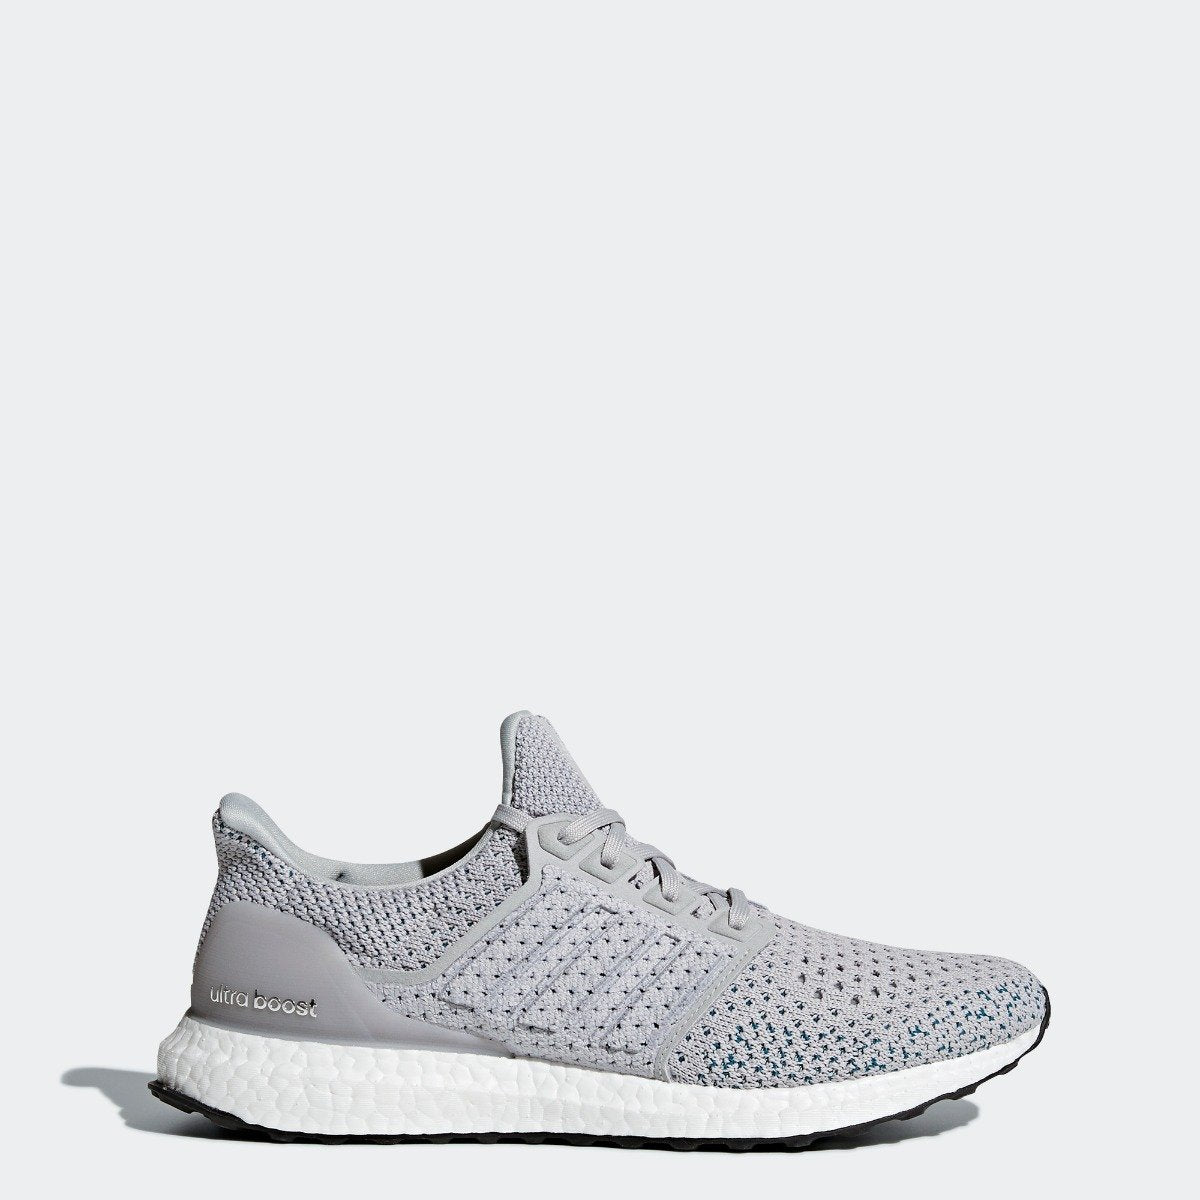 87743e2a4c5c2 Men s adidas Running Ultraboost Clima Shoes Gray BY8889